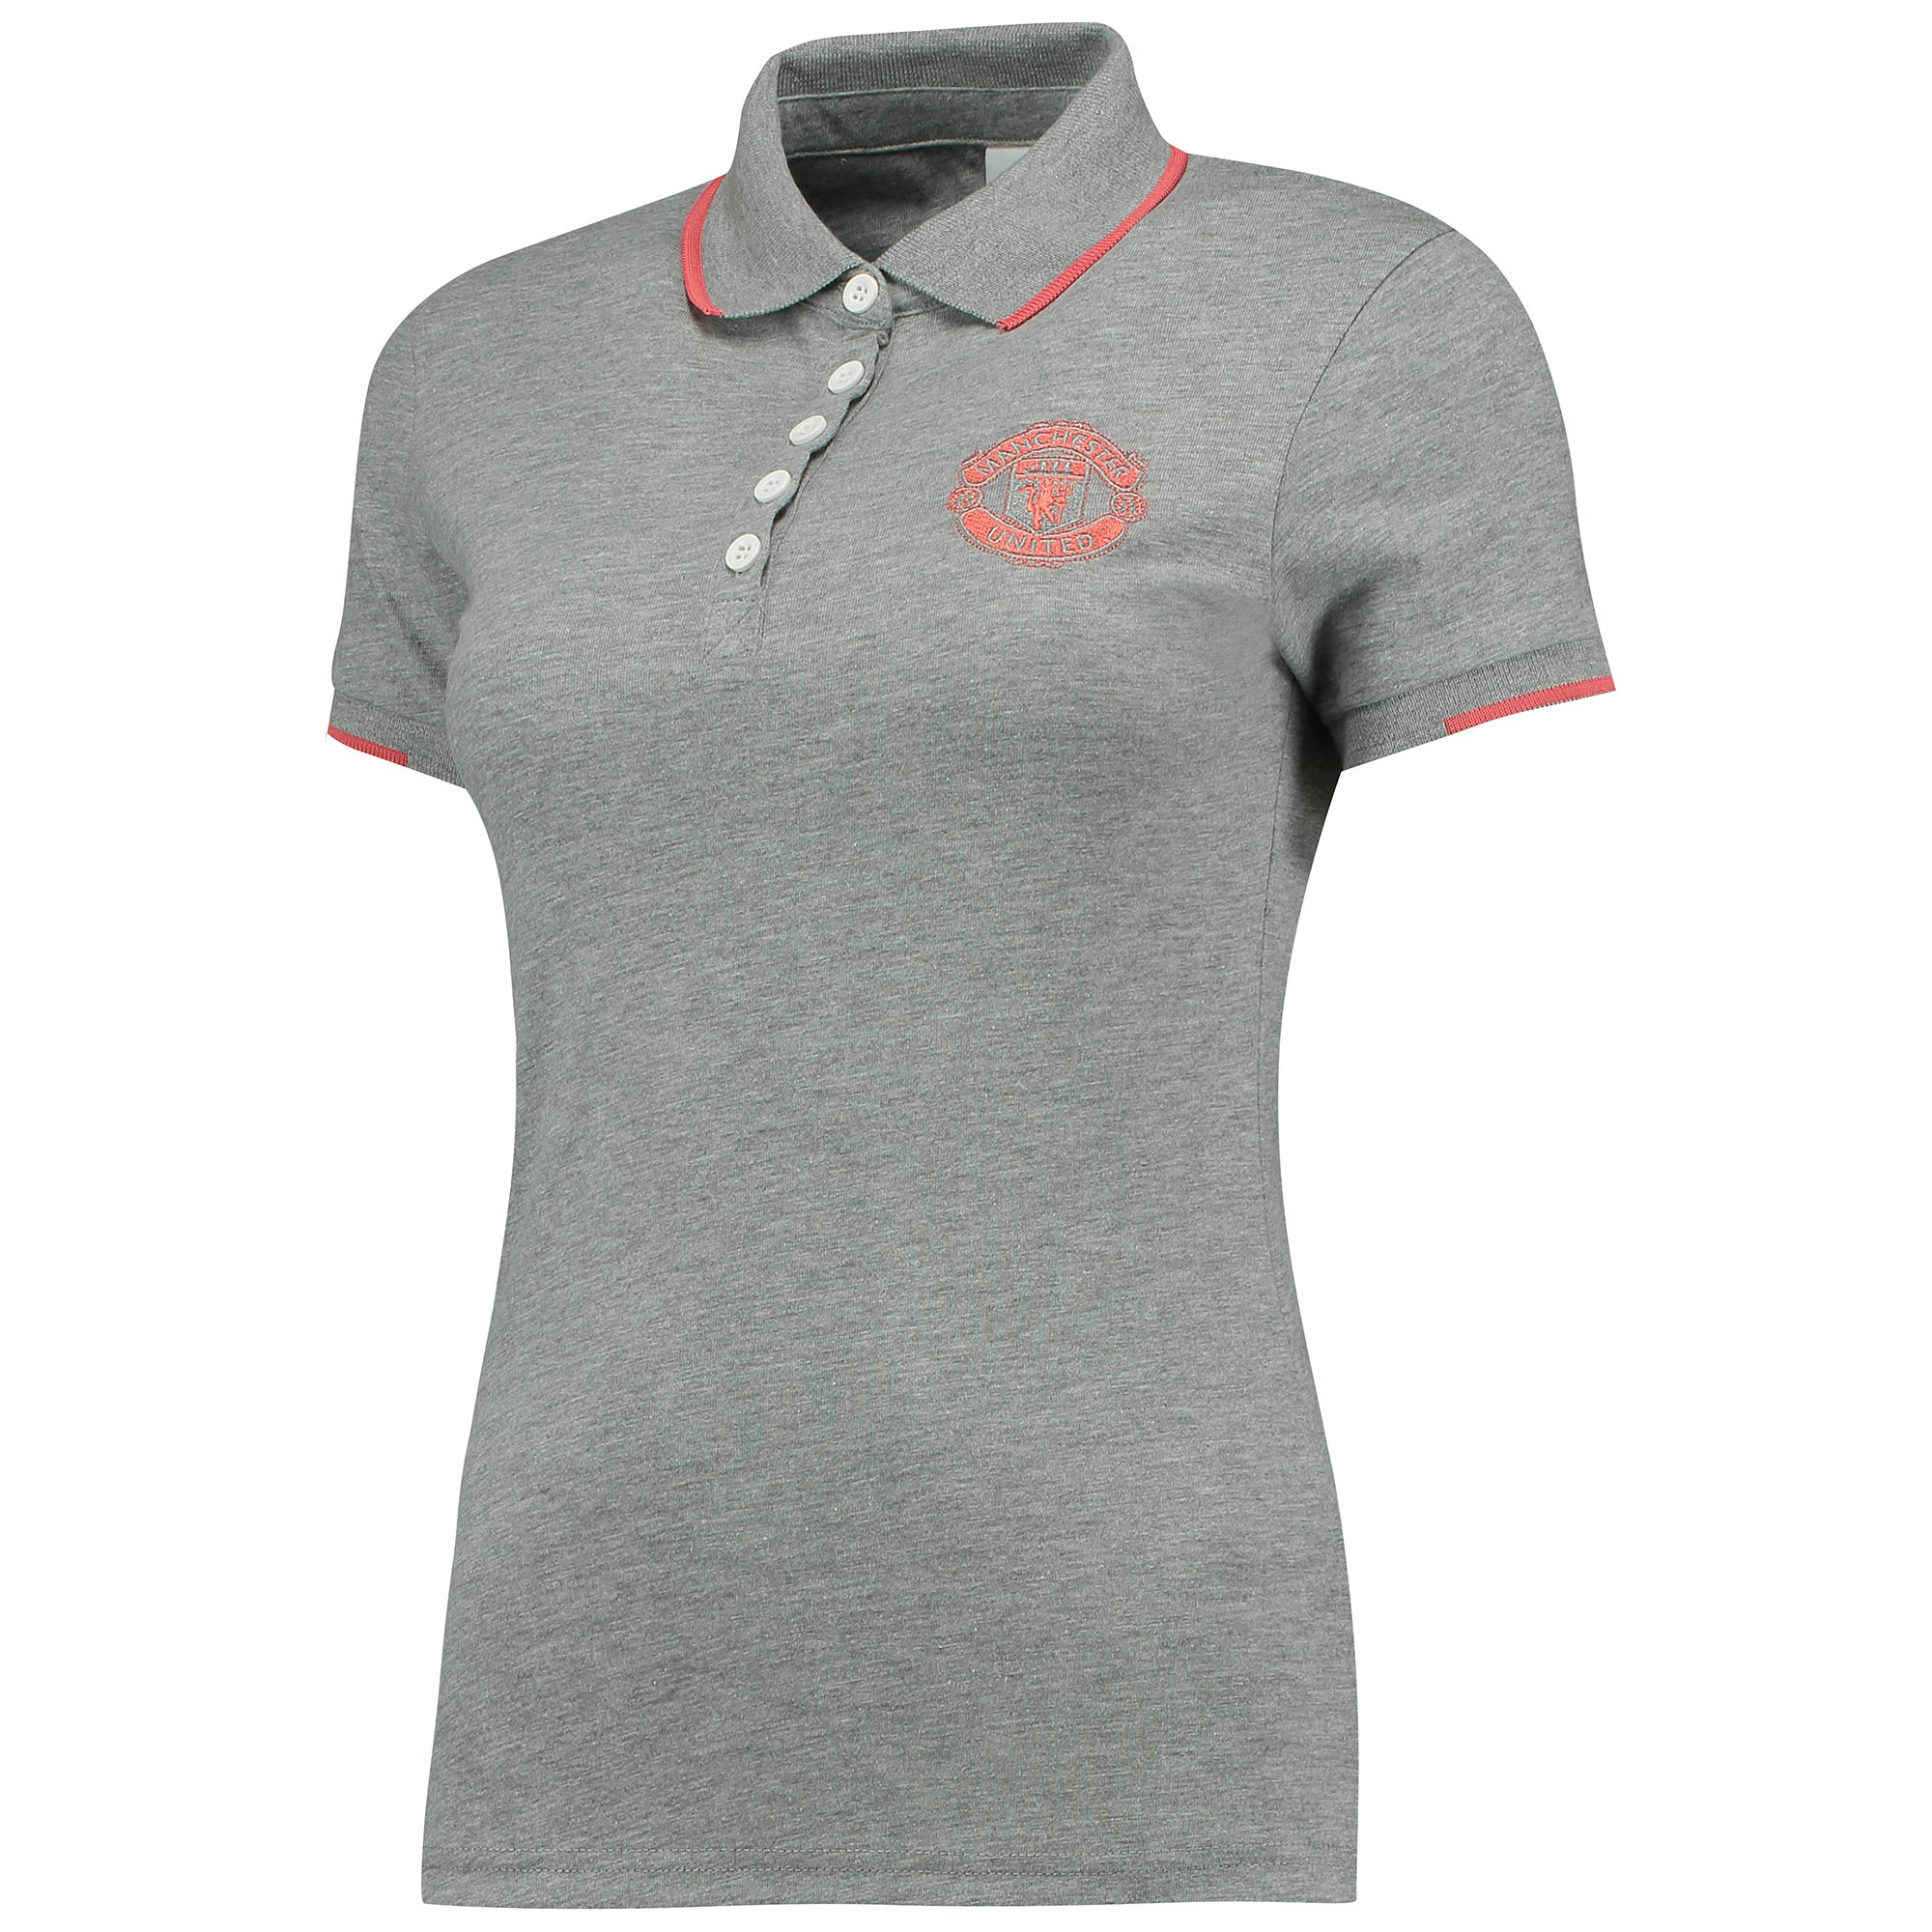 Manchester United Tipped Polo Shirt - Grey Marl - Women s